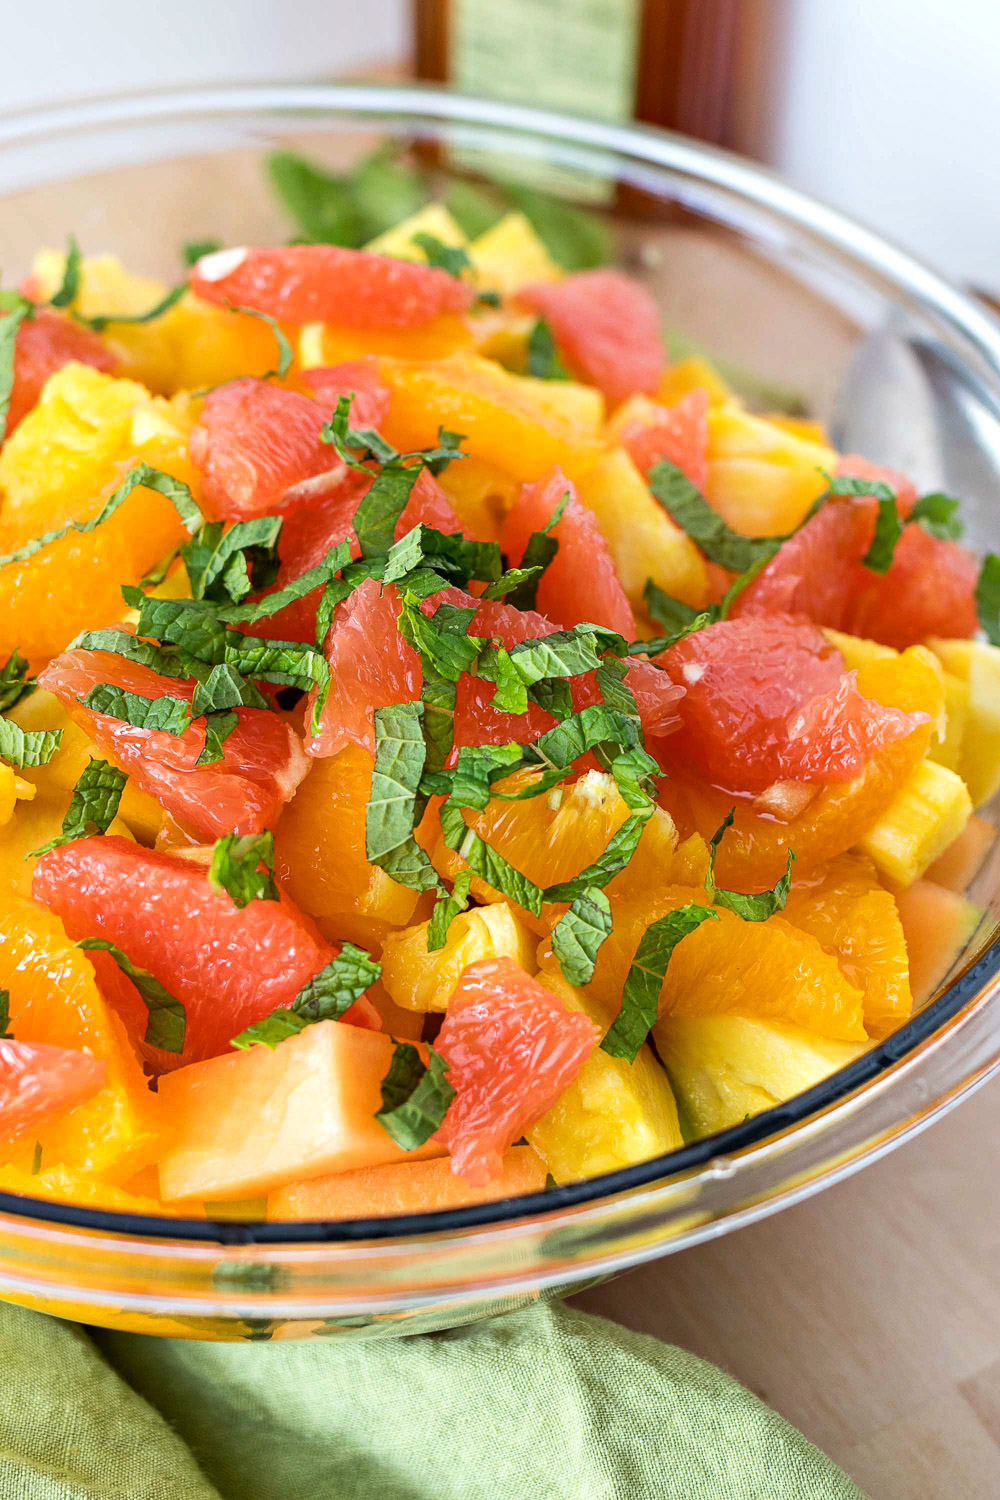 Watermelon and pineapple with garnish